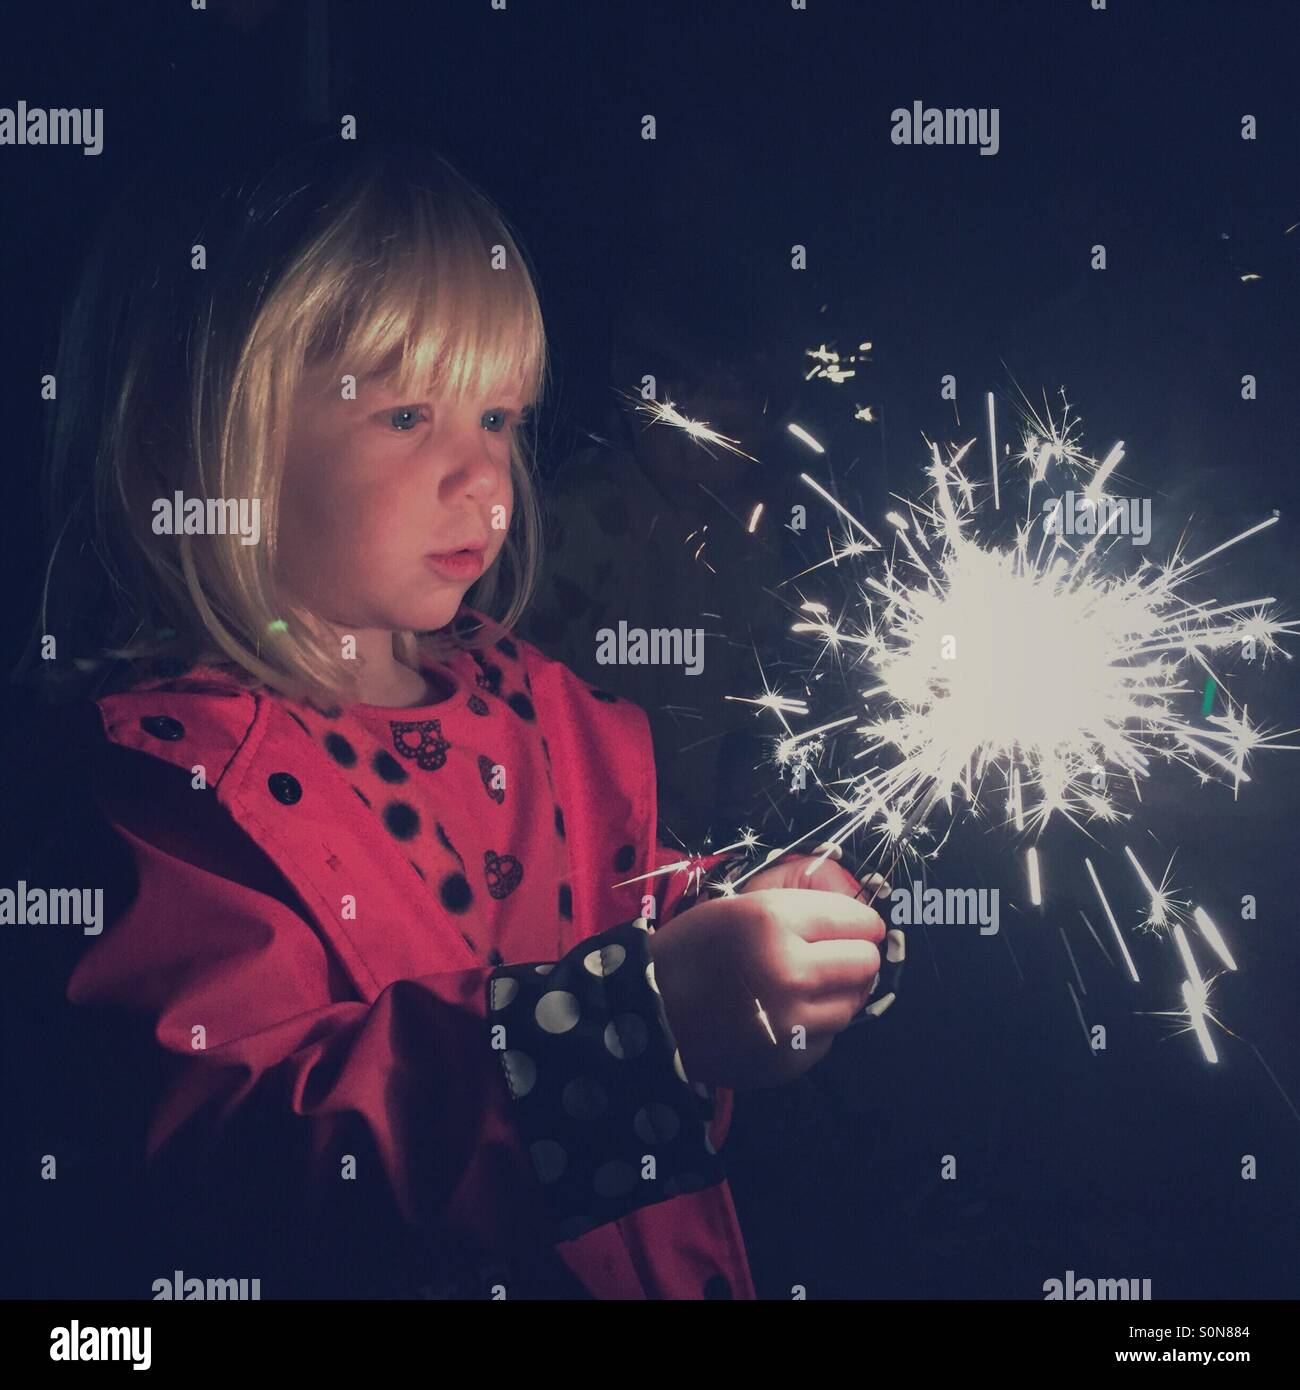 Young blonde Caucasian girl stares intently as a sparkler she is holding illuminates her face. - Stock Image